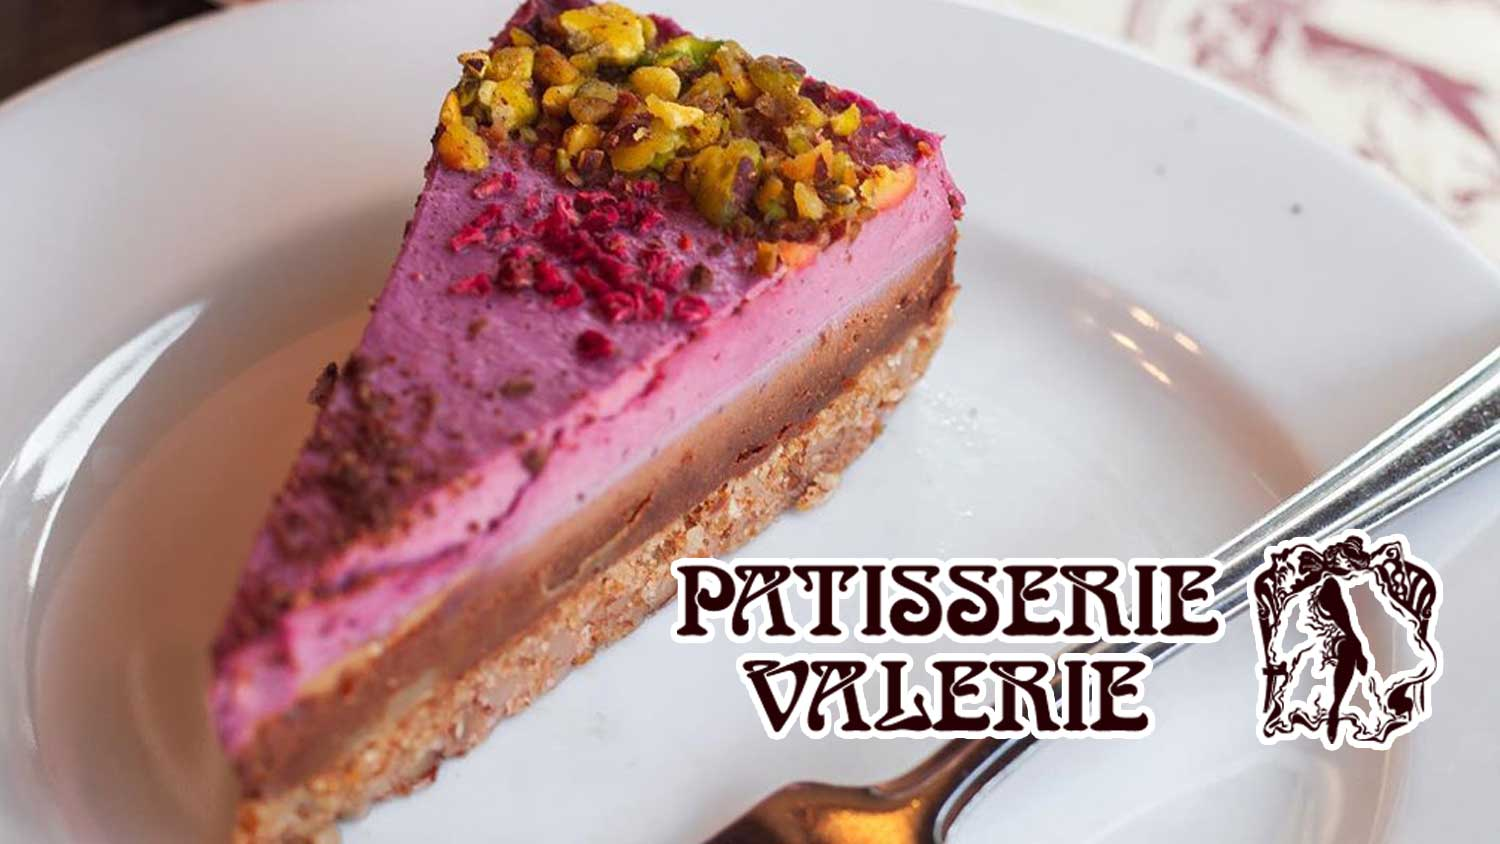 You Can Now Get Vegan Cake and Brunch at Patisserie Valerie